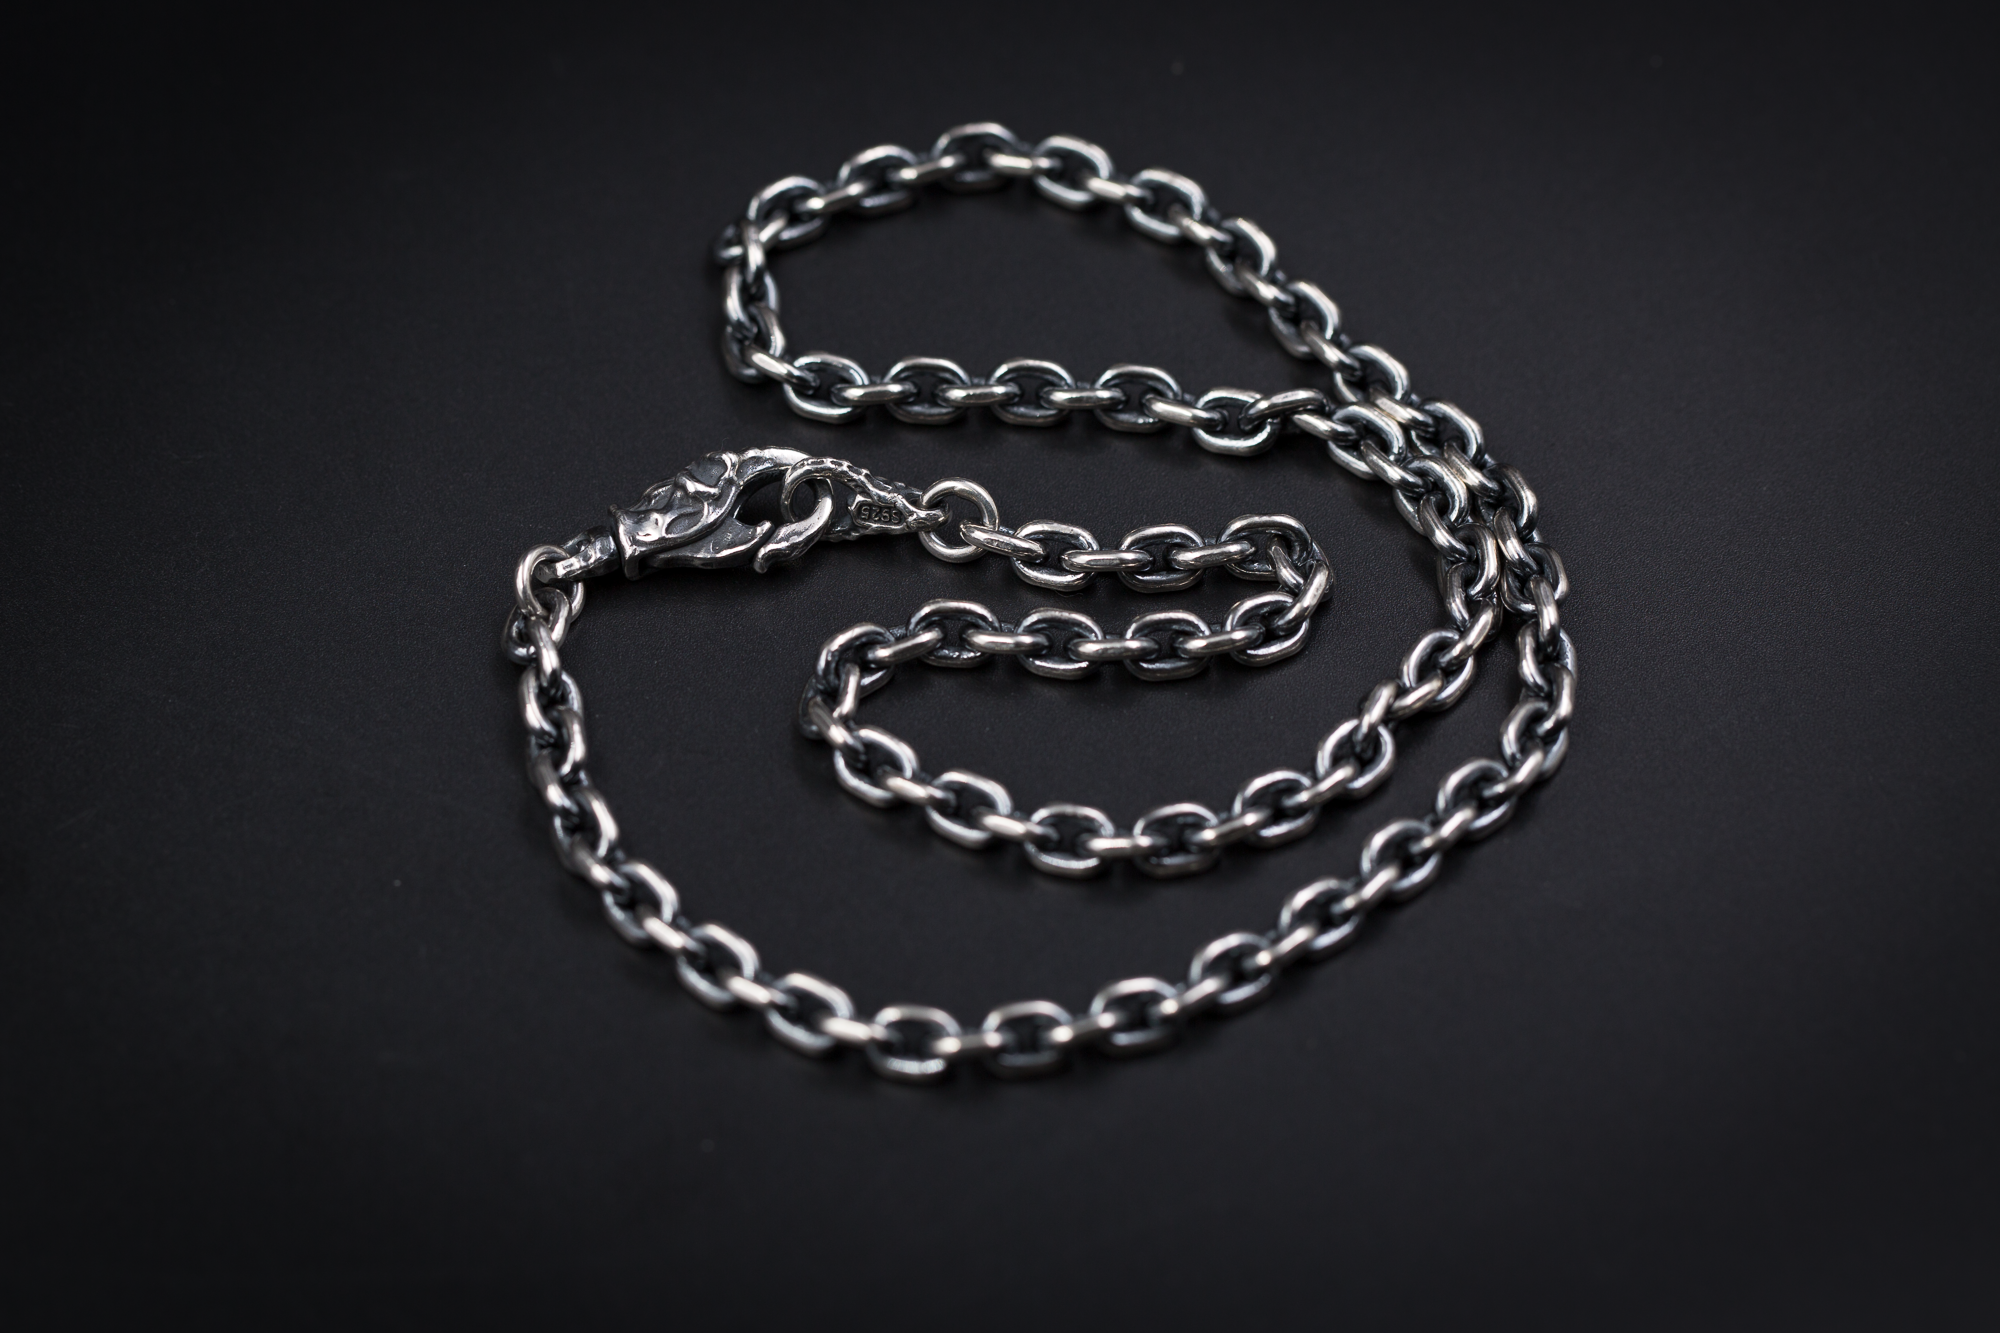 Silver Necklace Chain 5 5mm Skull Head Lobster Claw Etsy Silver Chain Necklace Chains Necklace Jewelry